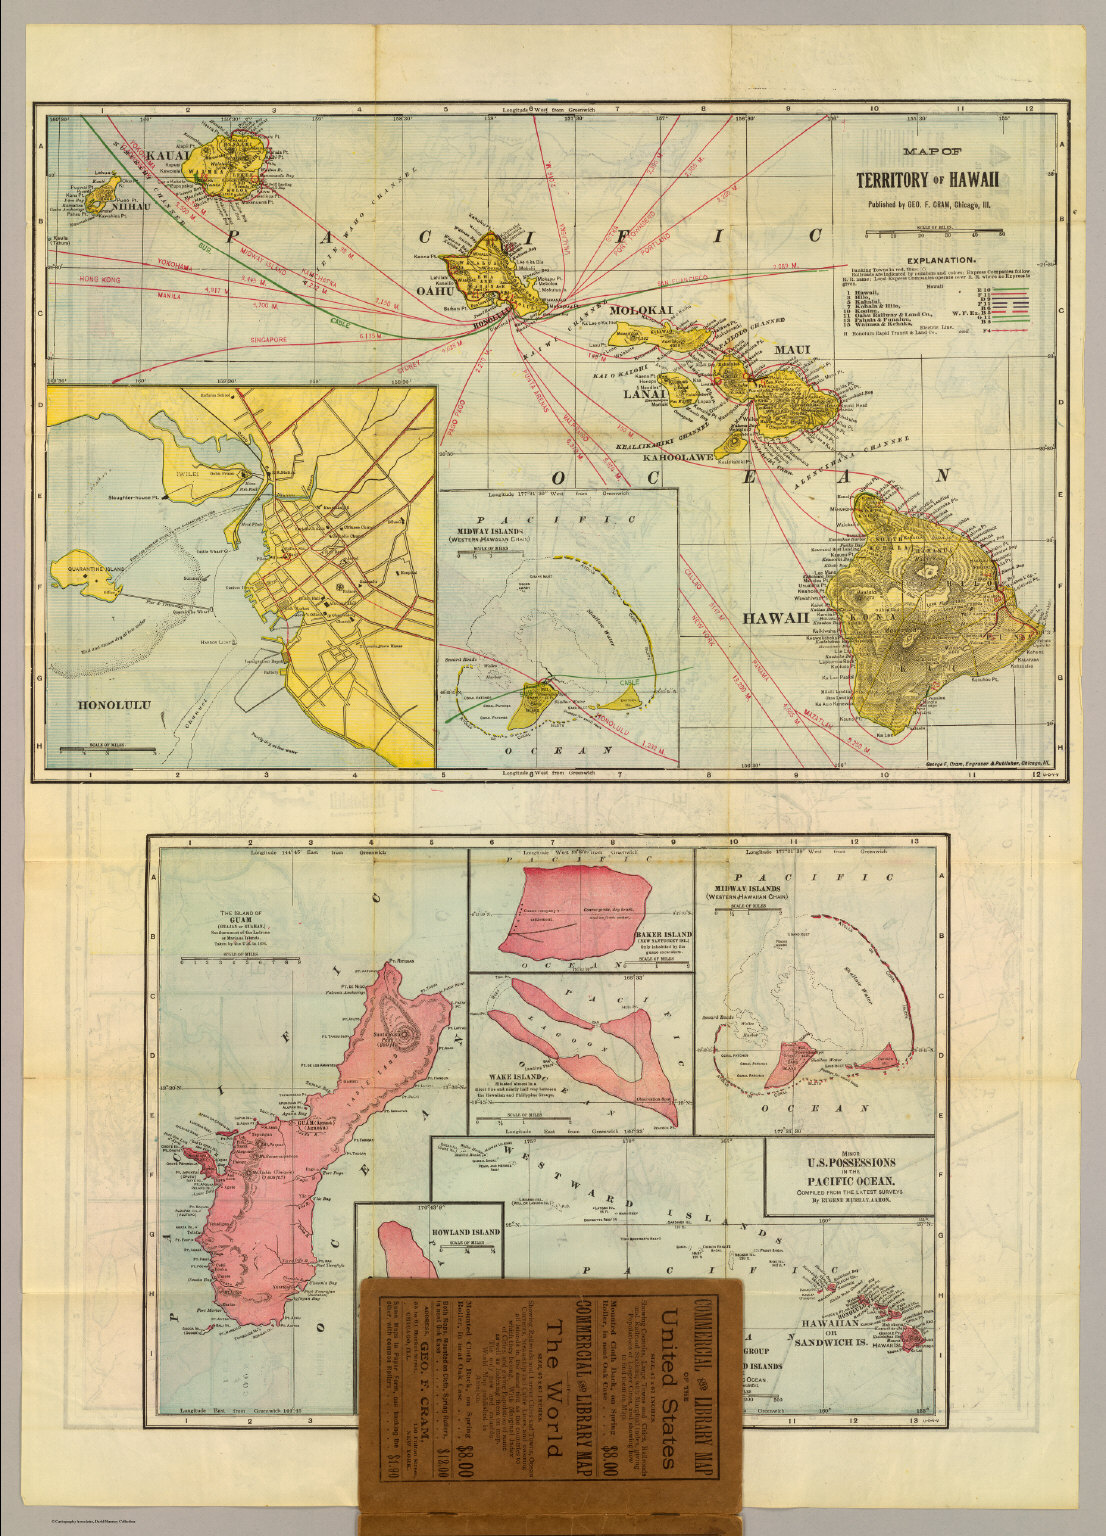 Hawaii Us Possessions Pacific Ocean David Rumsey Historical - Pacific-ocean-on-us-map